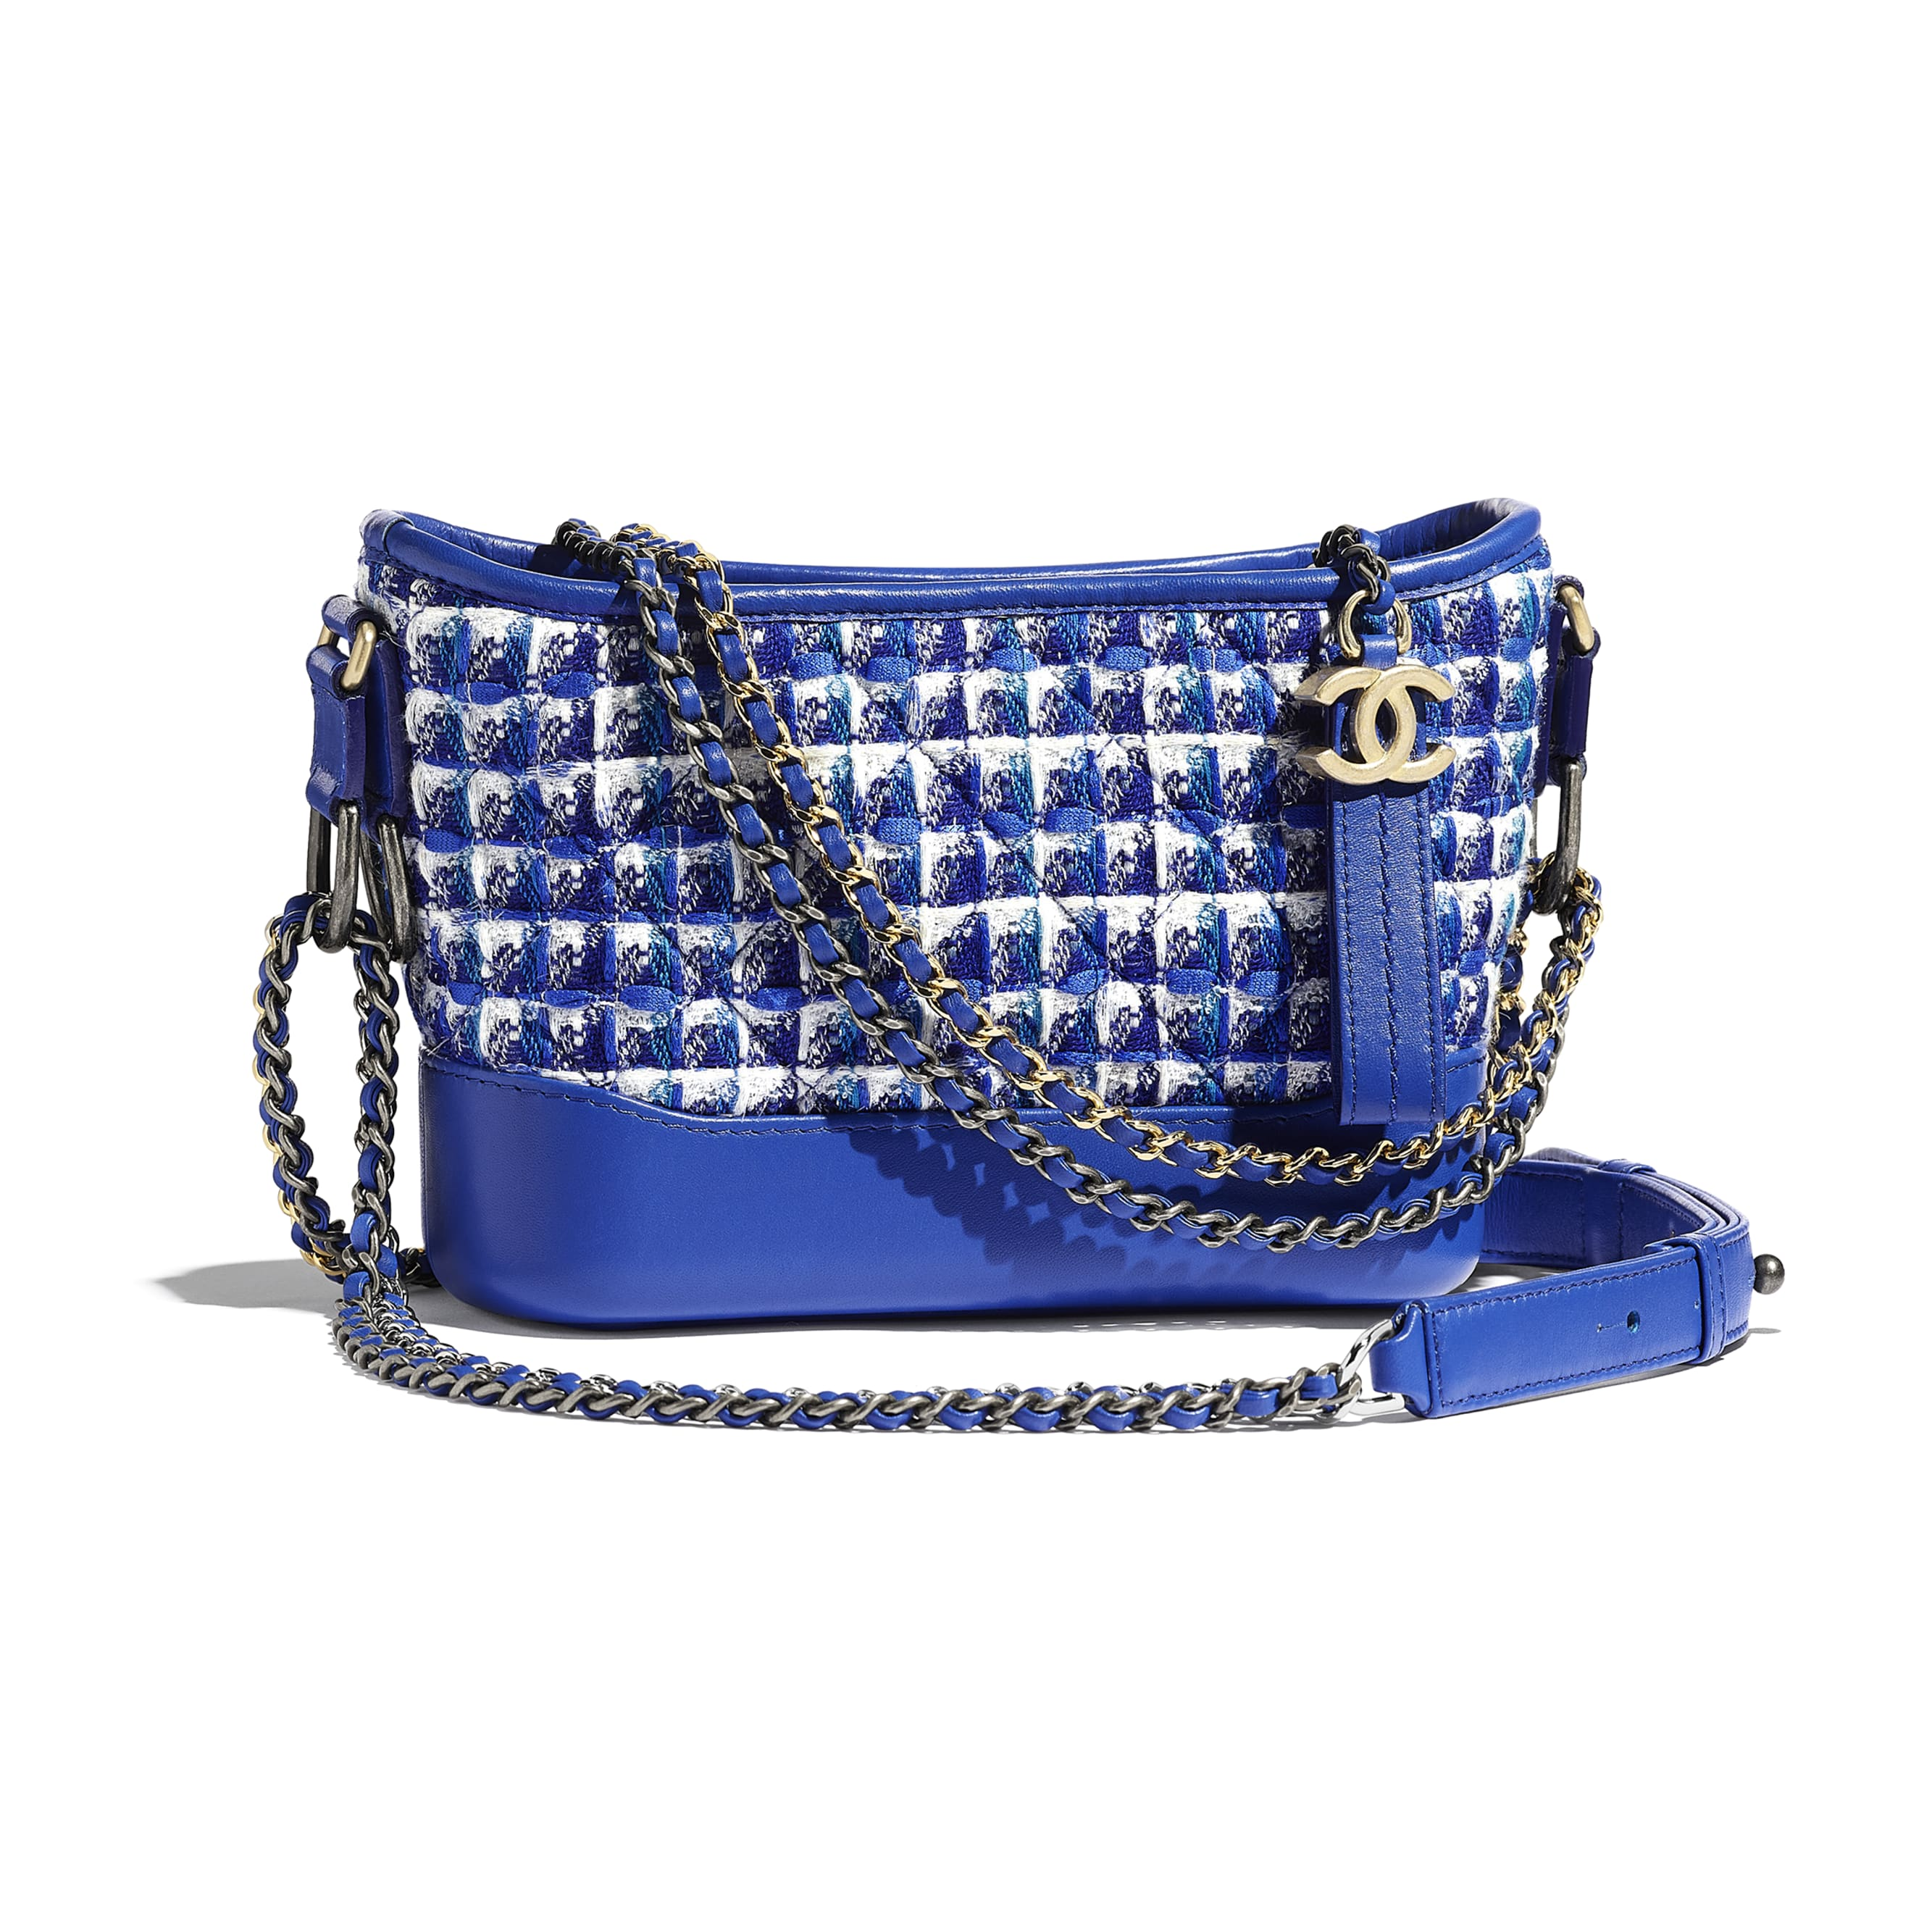 CHANEL'S GABRIELLE Small Hobo Bag - Blue, White & Silver - Tweed, Calfskin, Silver-Tone & Gold-Tone Metal - CHANEL - Default view - see standard sized version